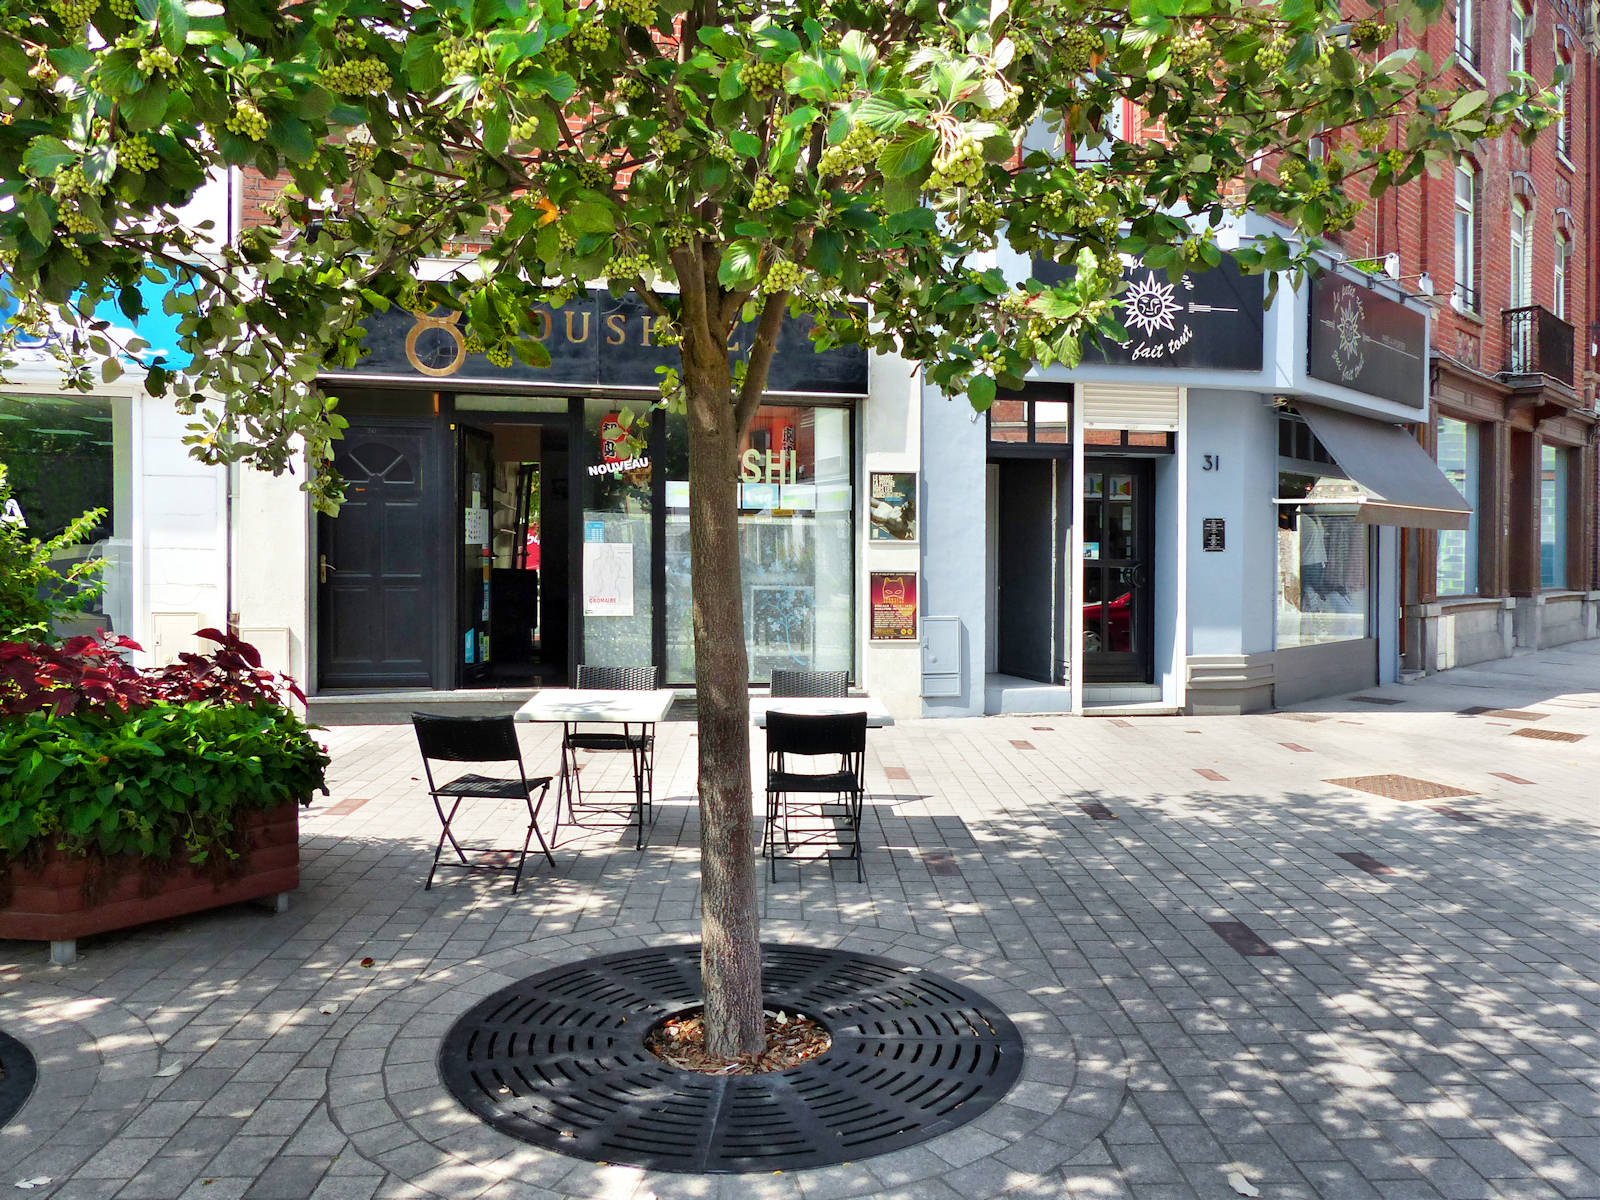 Restaurants Tourcoing - Oushiza, Place Roussel